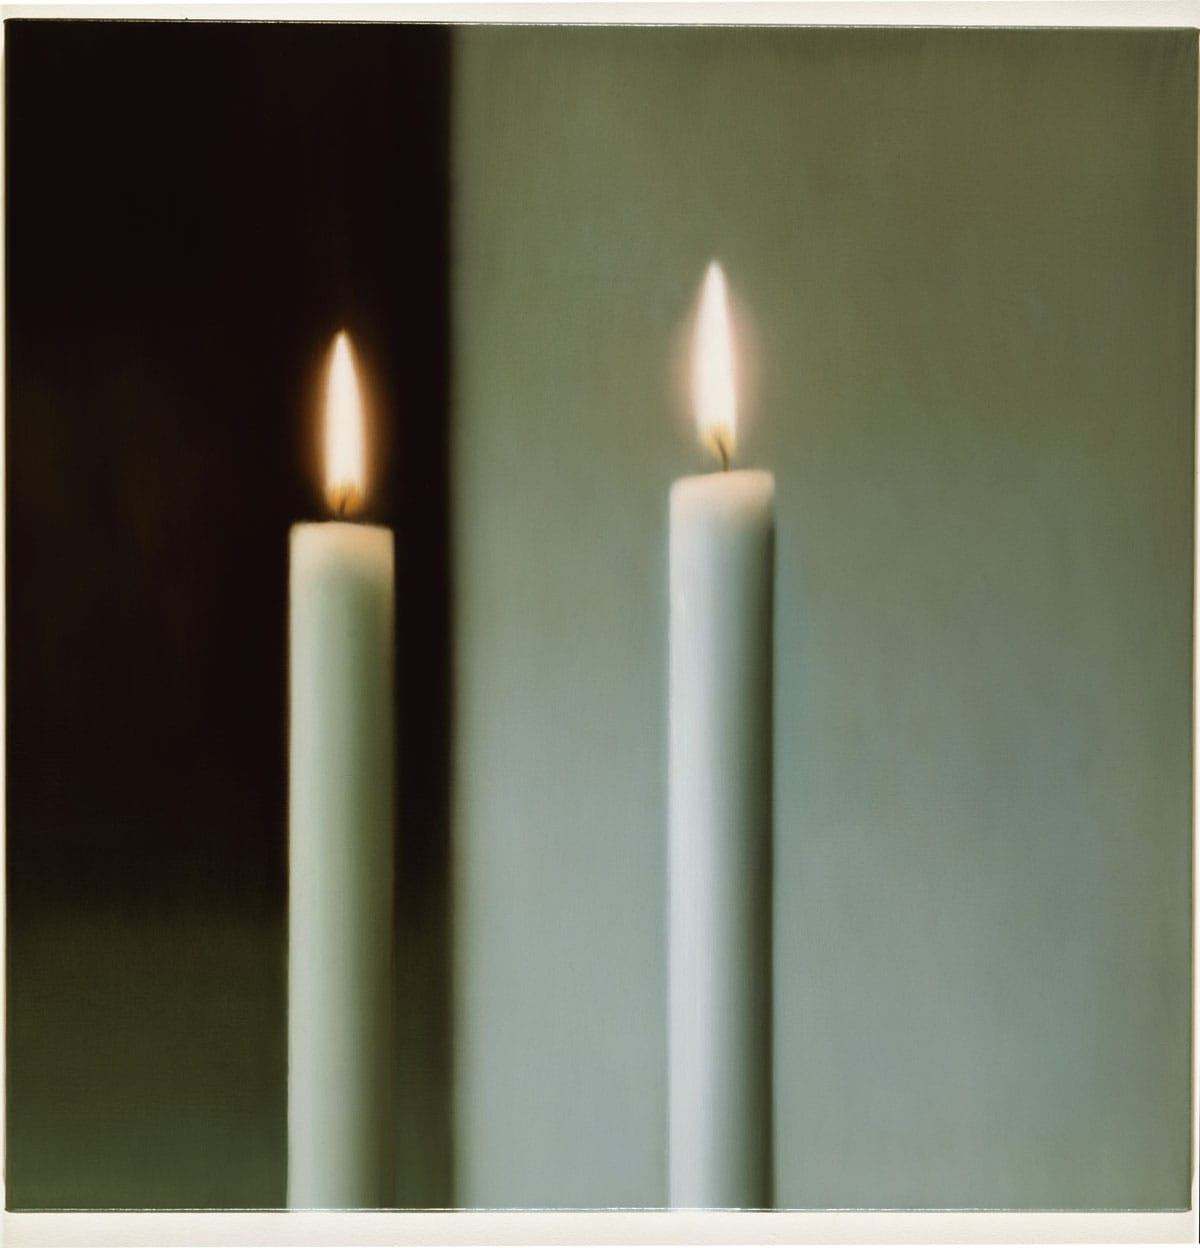 Richter Two Candles Two Candles by Gerhard